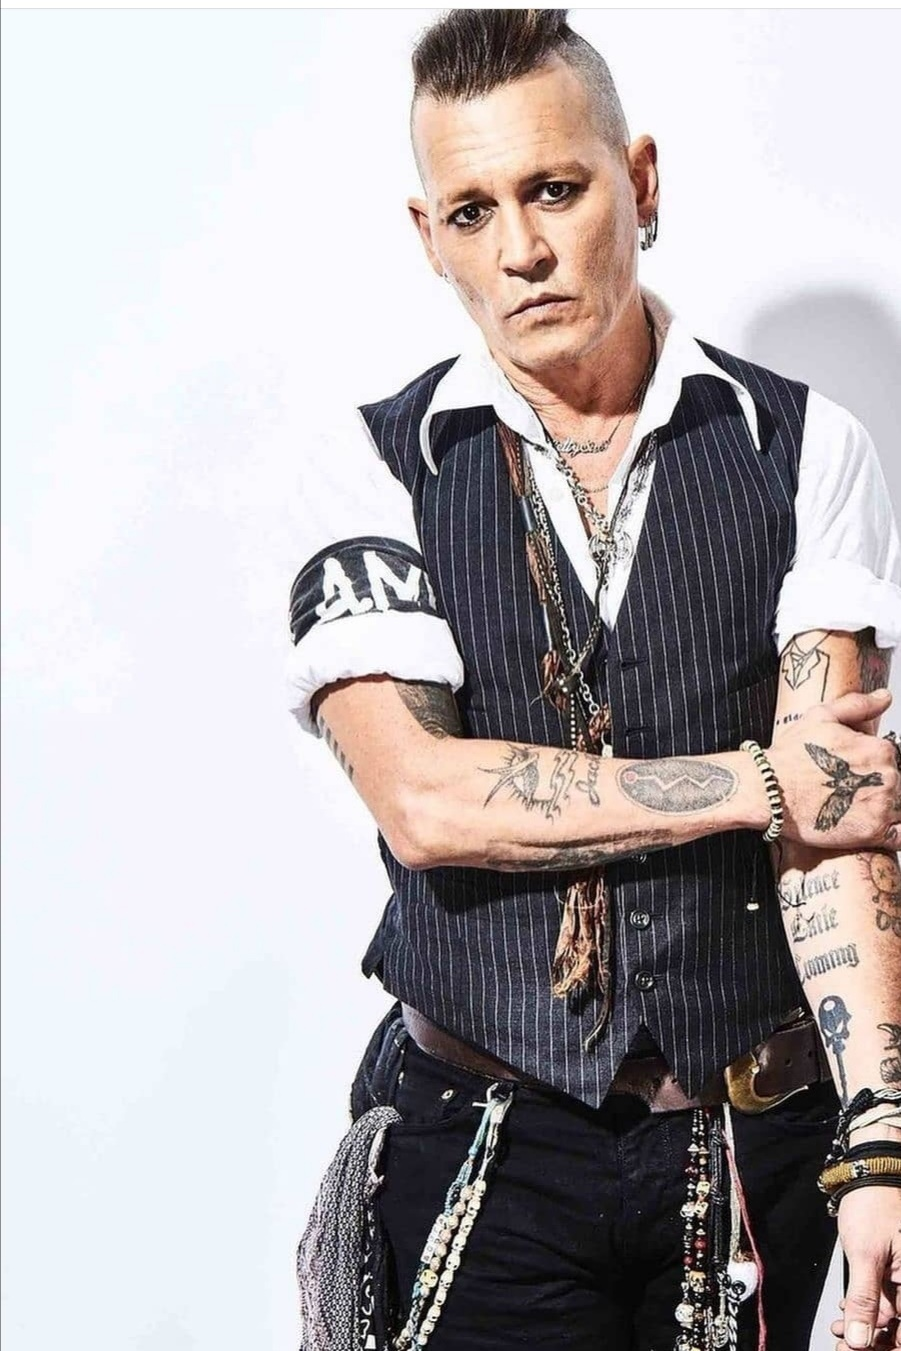 Johnny Depp with a thousand faces turns 58 All you need to know about Johnny Depp Johnny Depp, the literal actor with a thousand faces and one of the biggest movie stars in the world, blew out the 58-year candle on June 9.